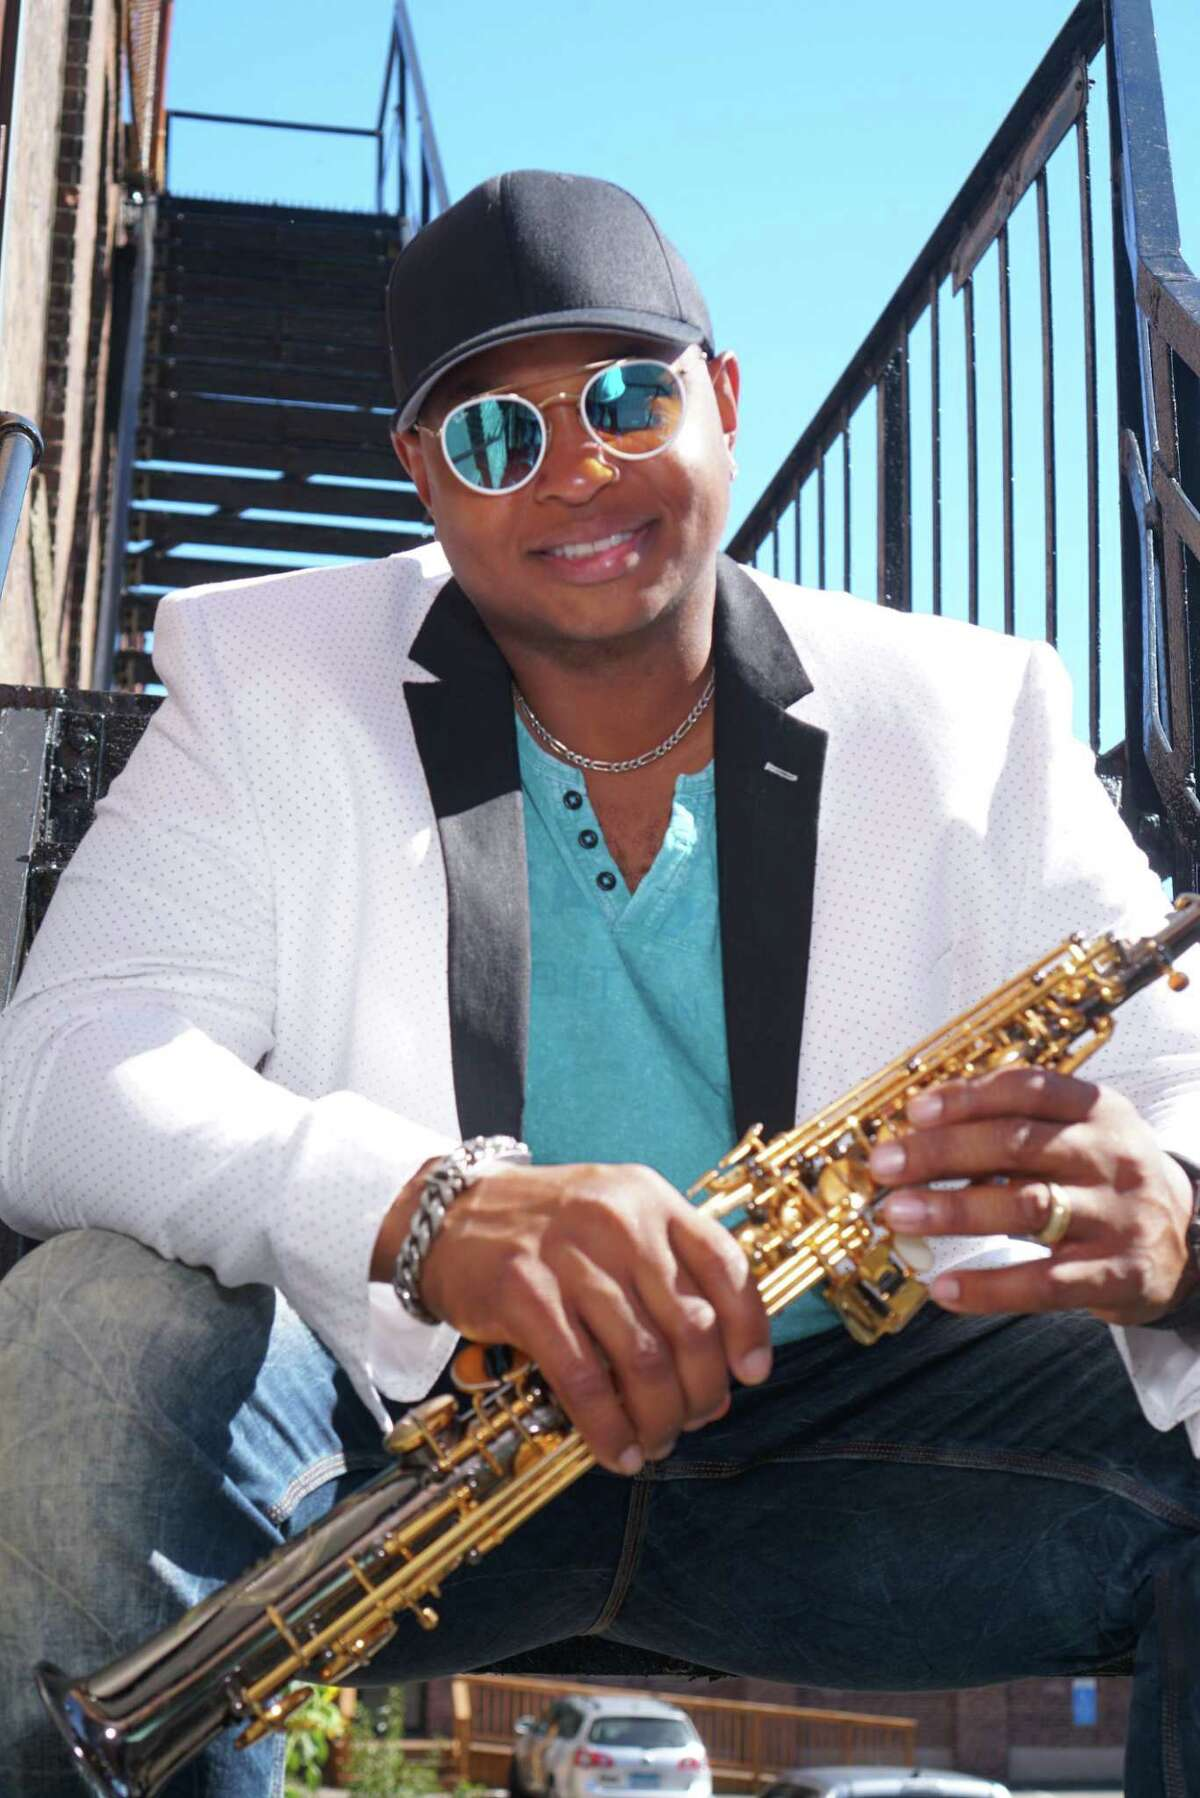 """Jazz saxophonist David Davis, who grew up in Stamford, has a new CD out, """"Dig This!,"""" which illustrates the diversity of the music he likes to explore."""